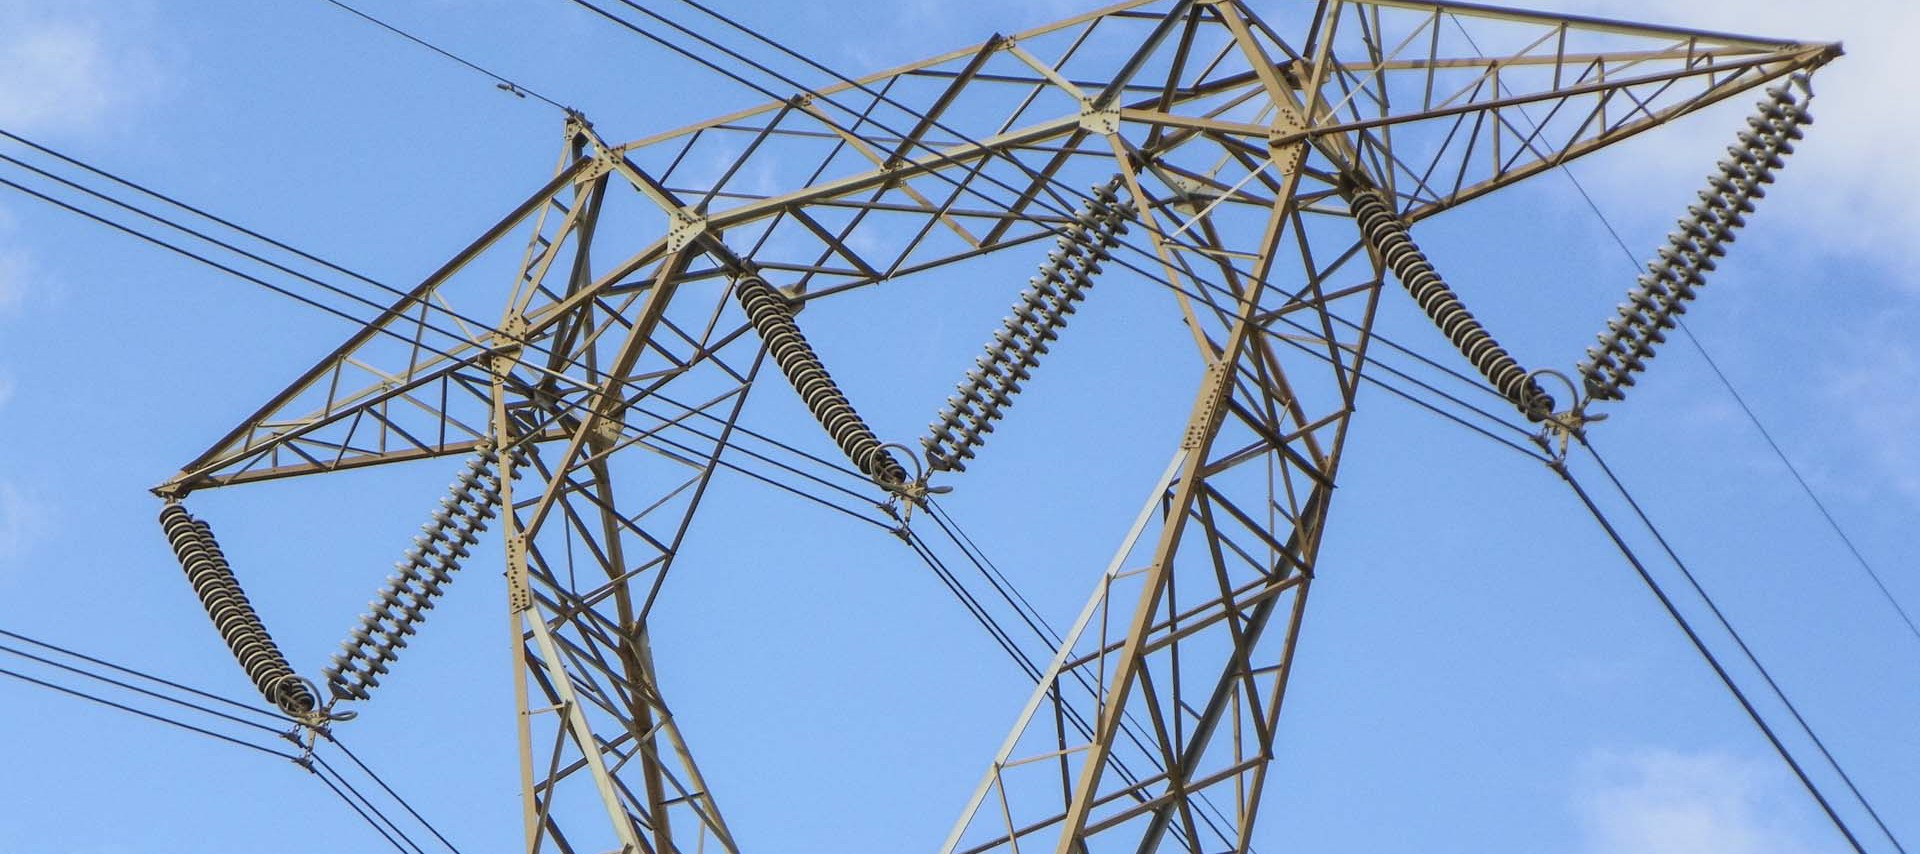 HARDWARE AND FITTINGS FOR OVERHEAD LINES - Nuova